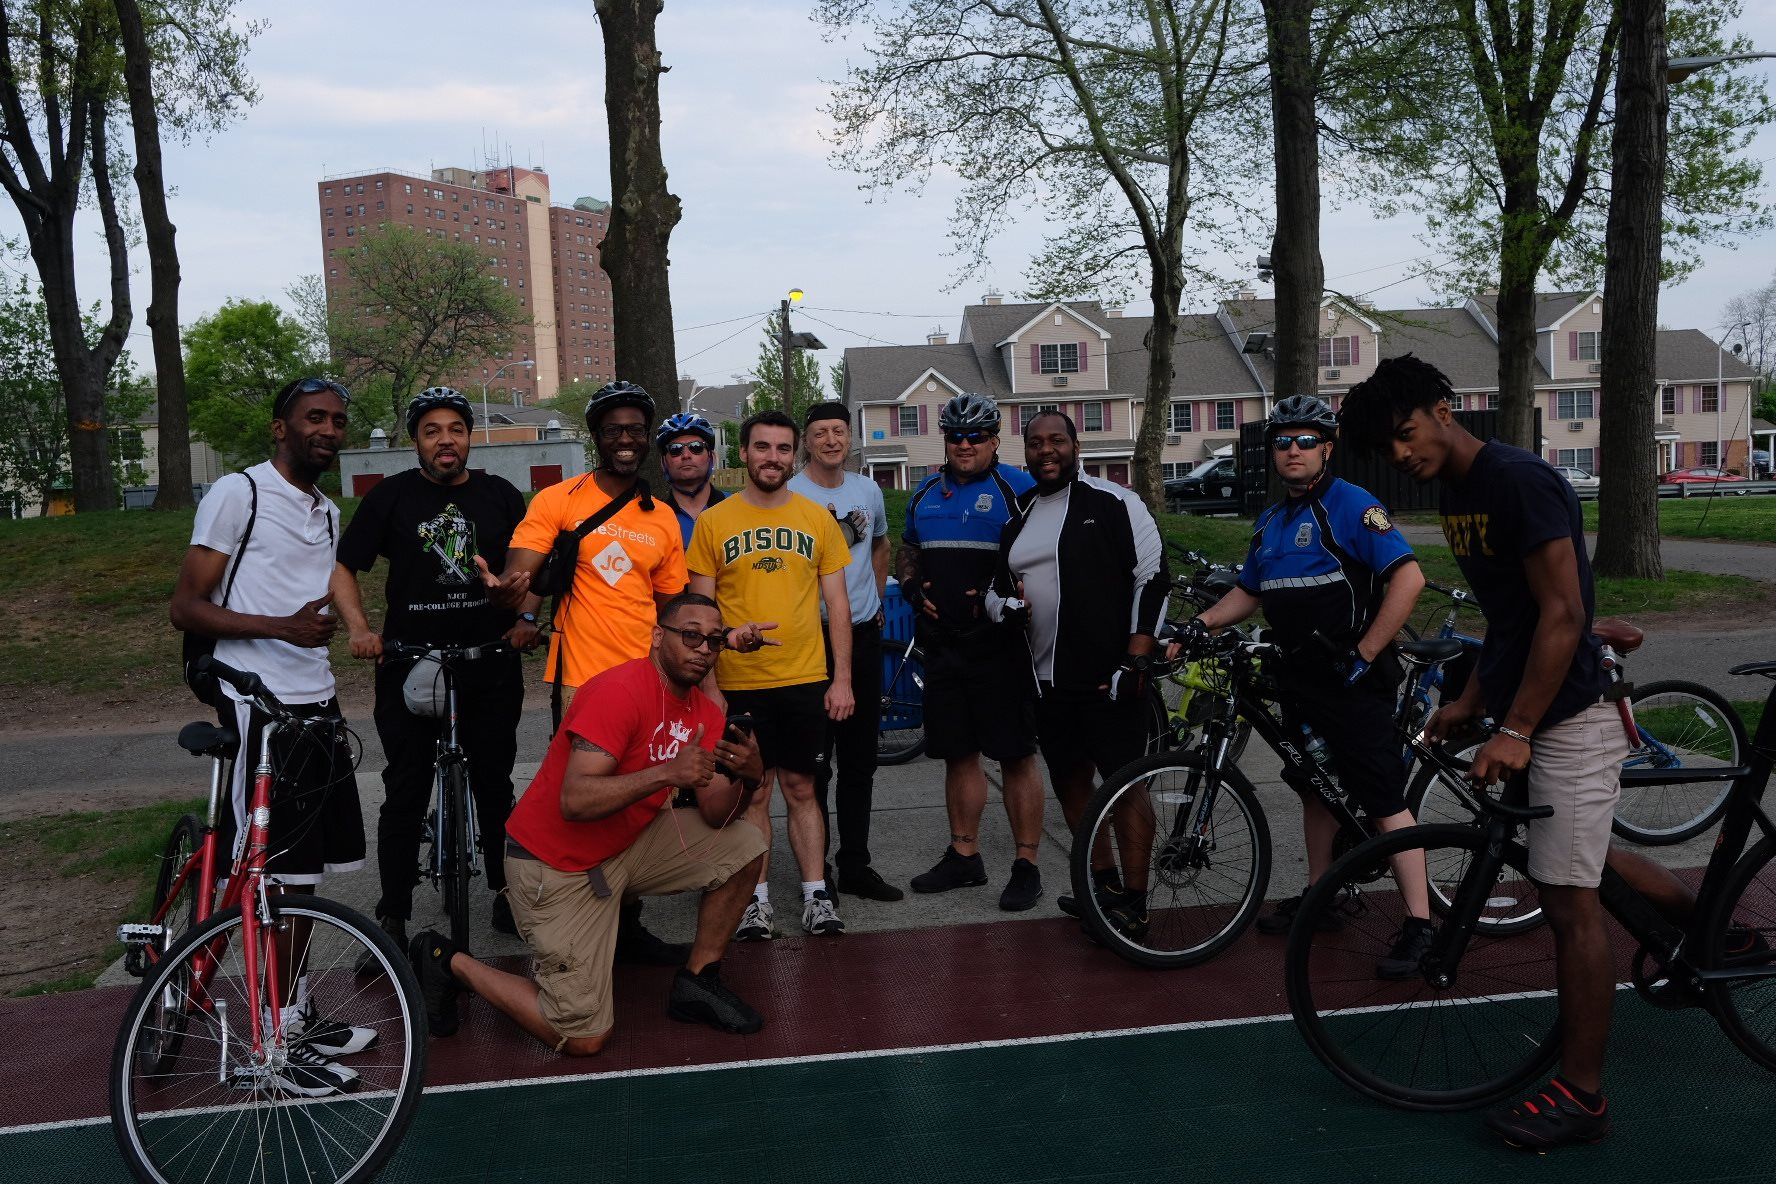 JCPD joined The Royal Men Foundation for our bike ride.